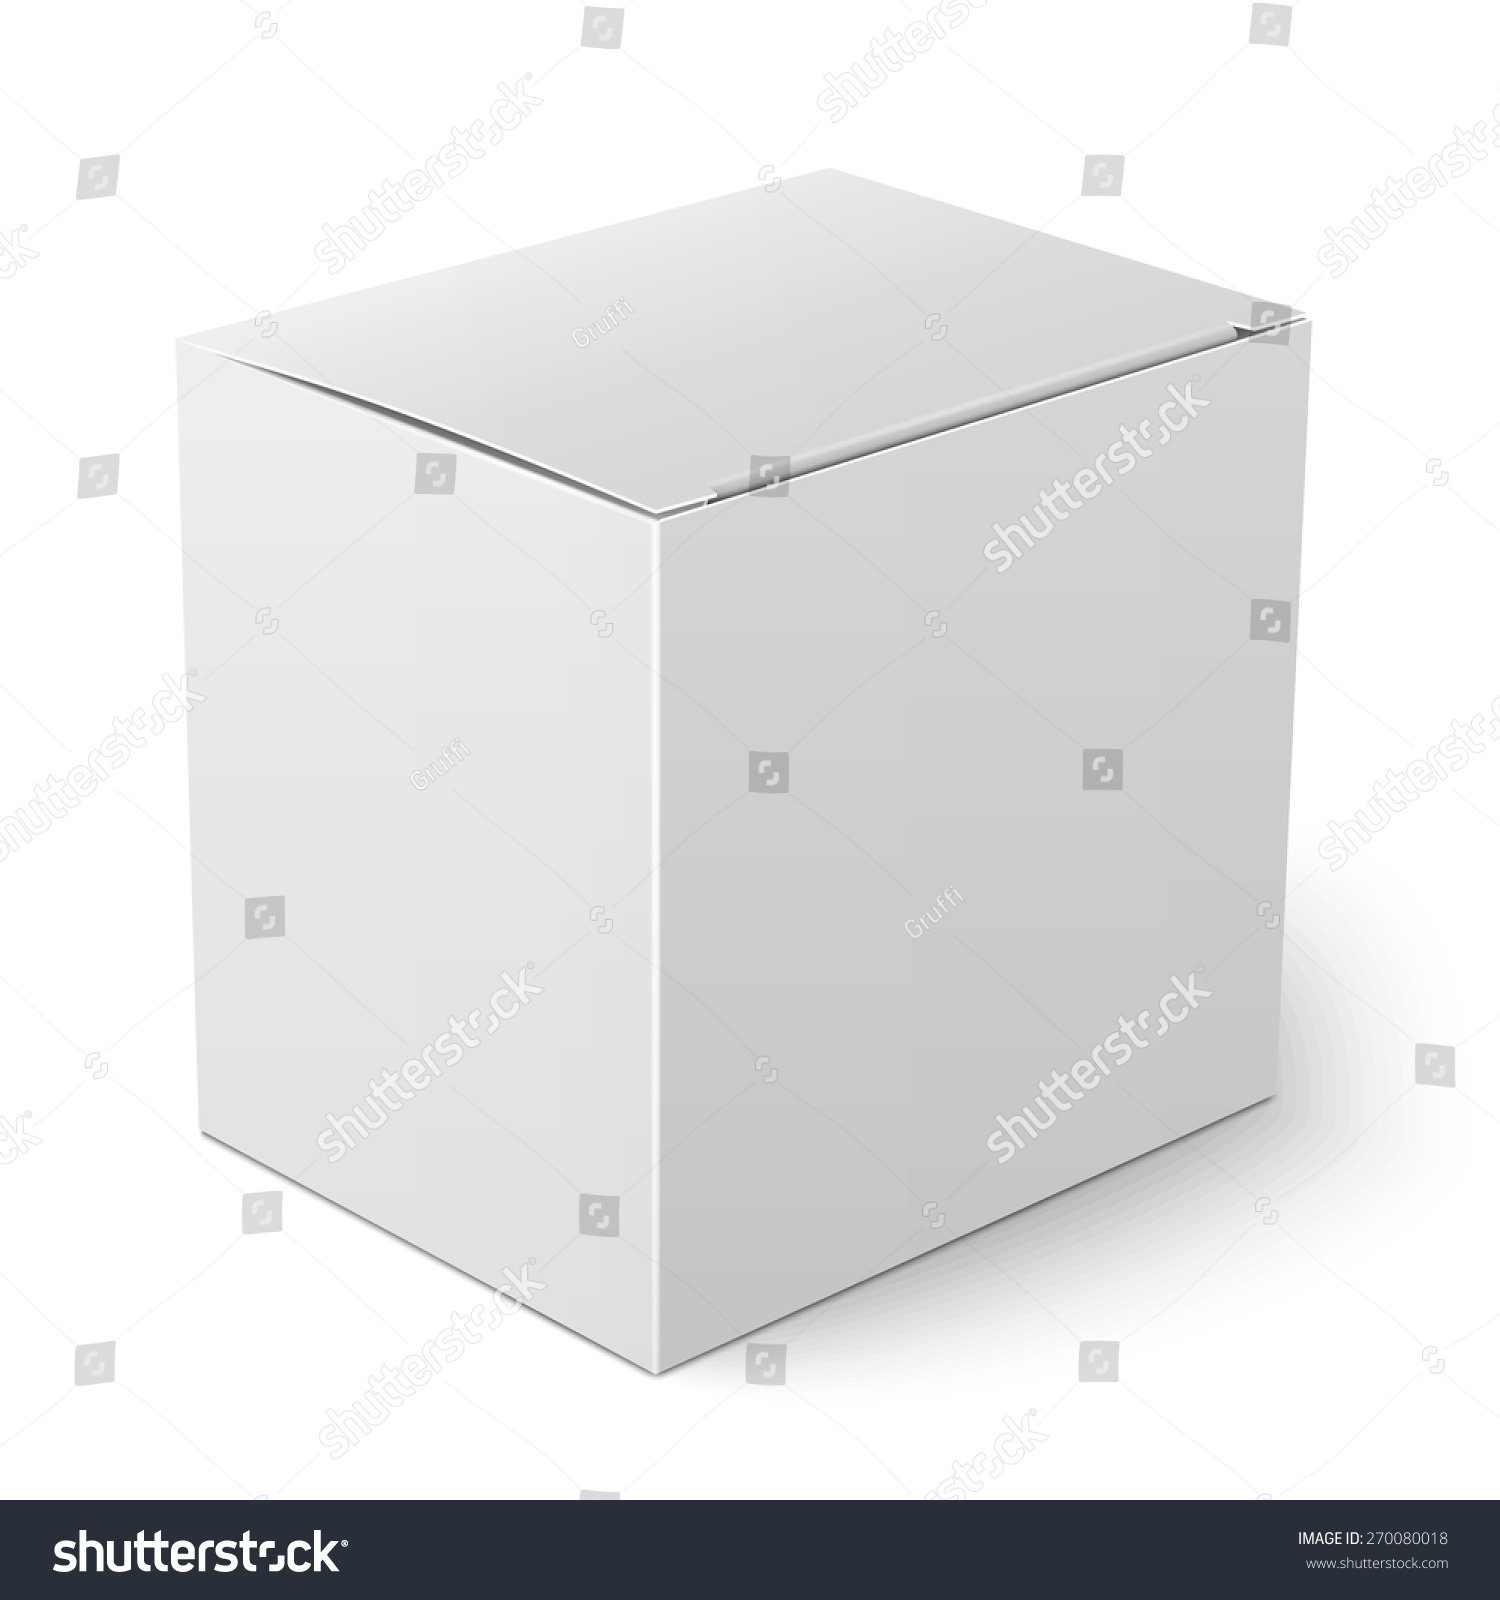 blank paper or cardboard box template with flap cover standing on white background packaging. Black Bedroom Furniture Sets. Home Design Ideas